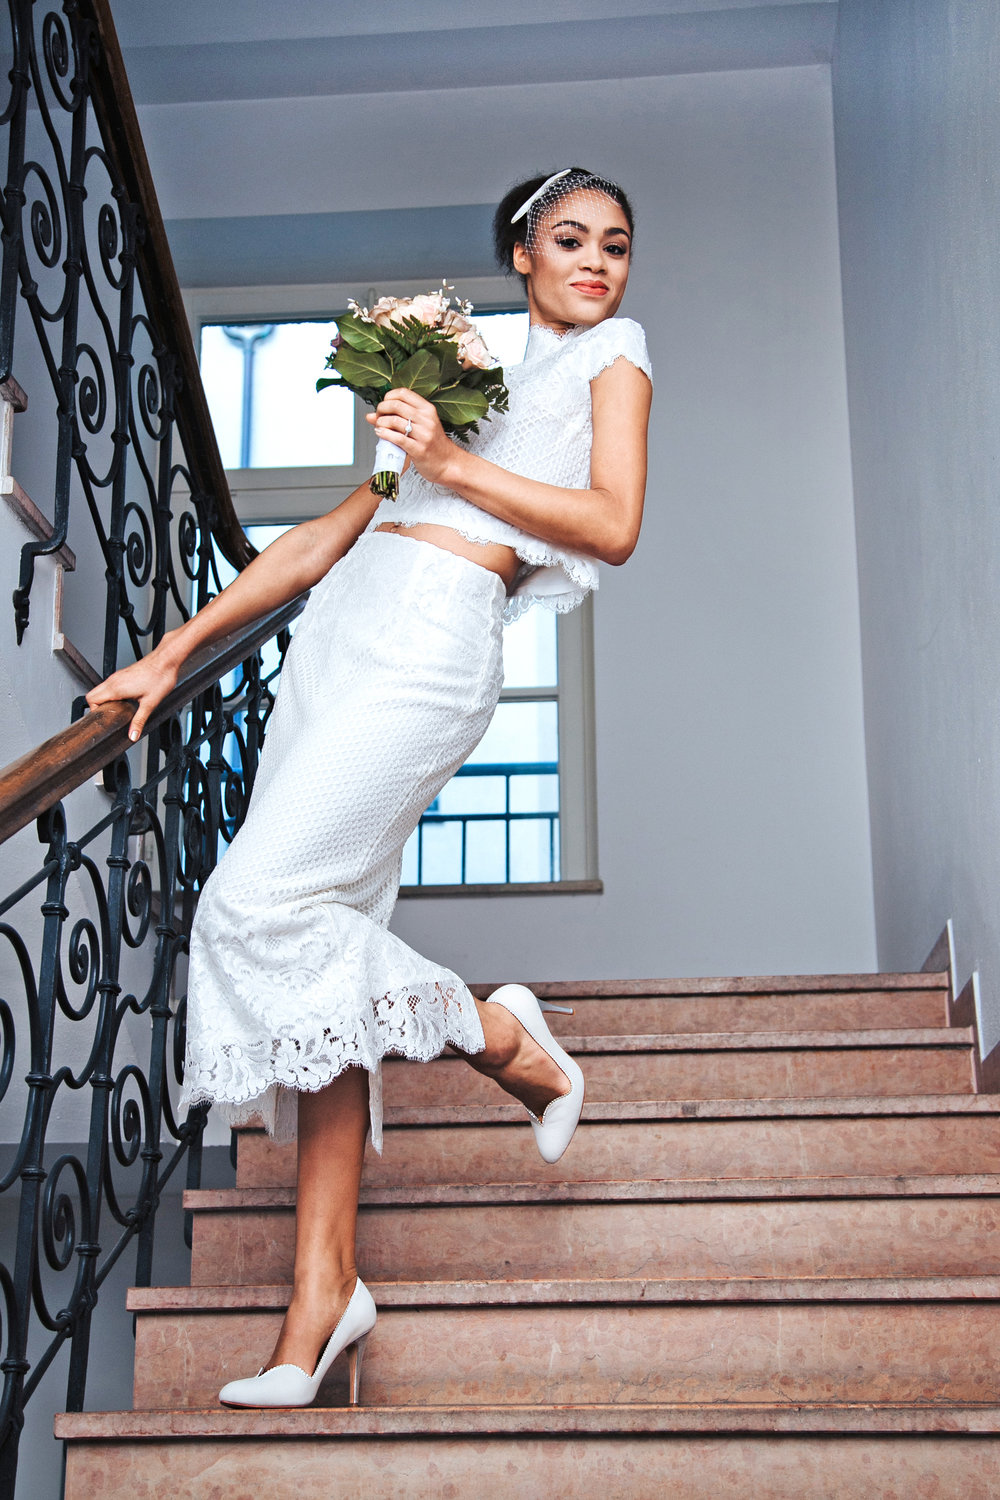 selve_munich_Crystal_Bridal_Image_Kaviar_Gauche_Dress.jpg